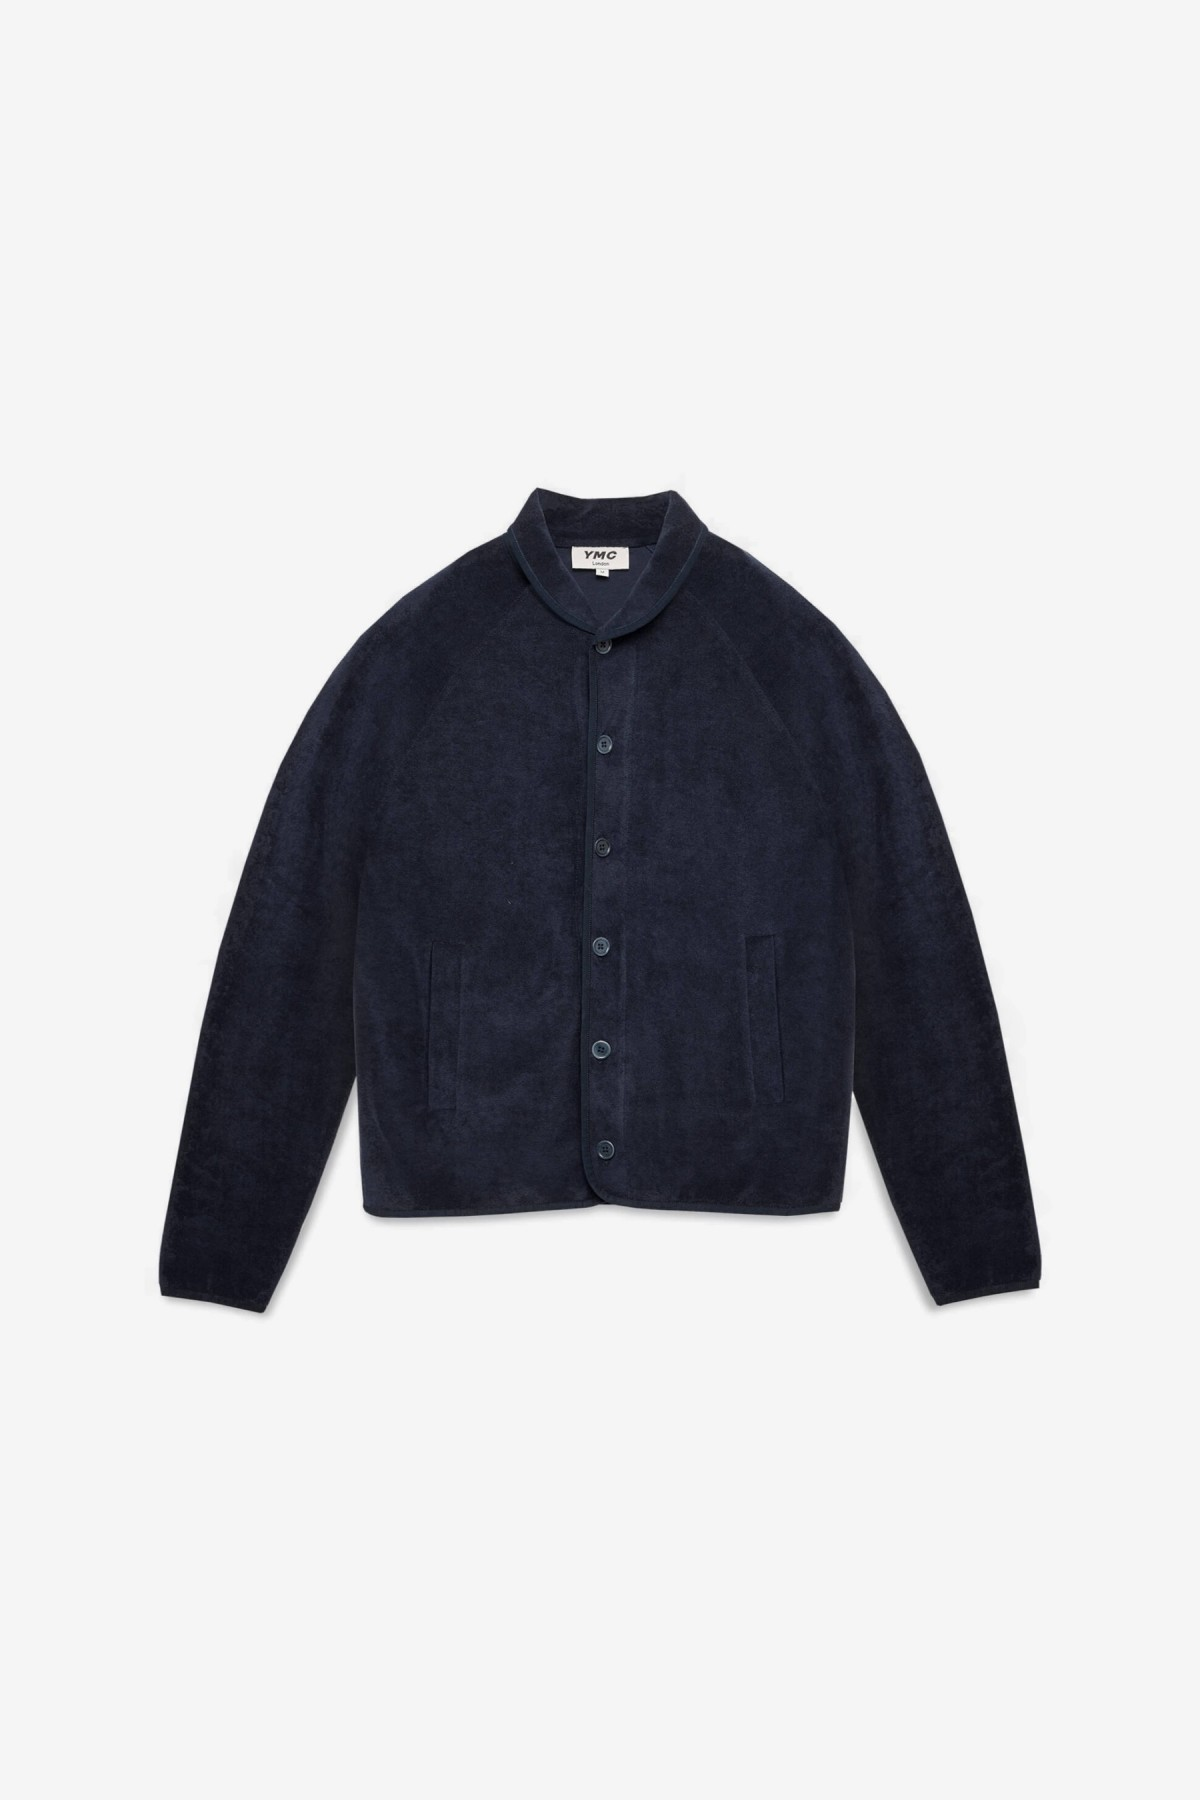 YMC You Must Create Beach Jacket in Navy